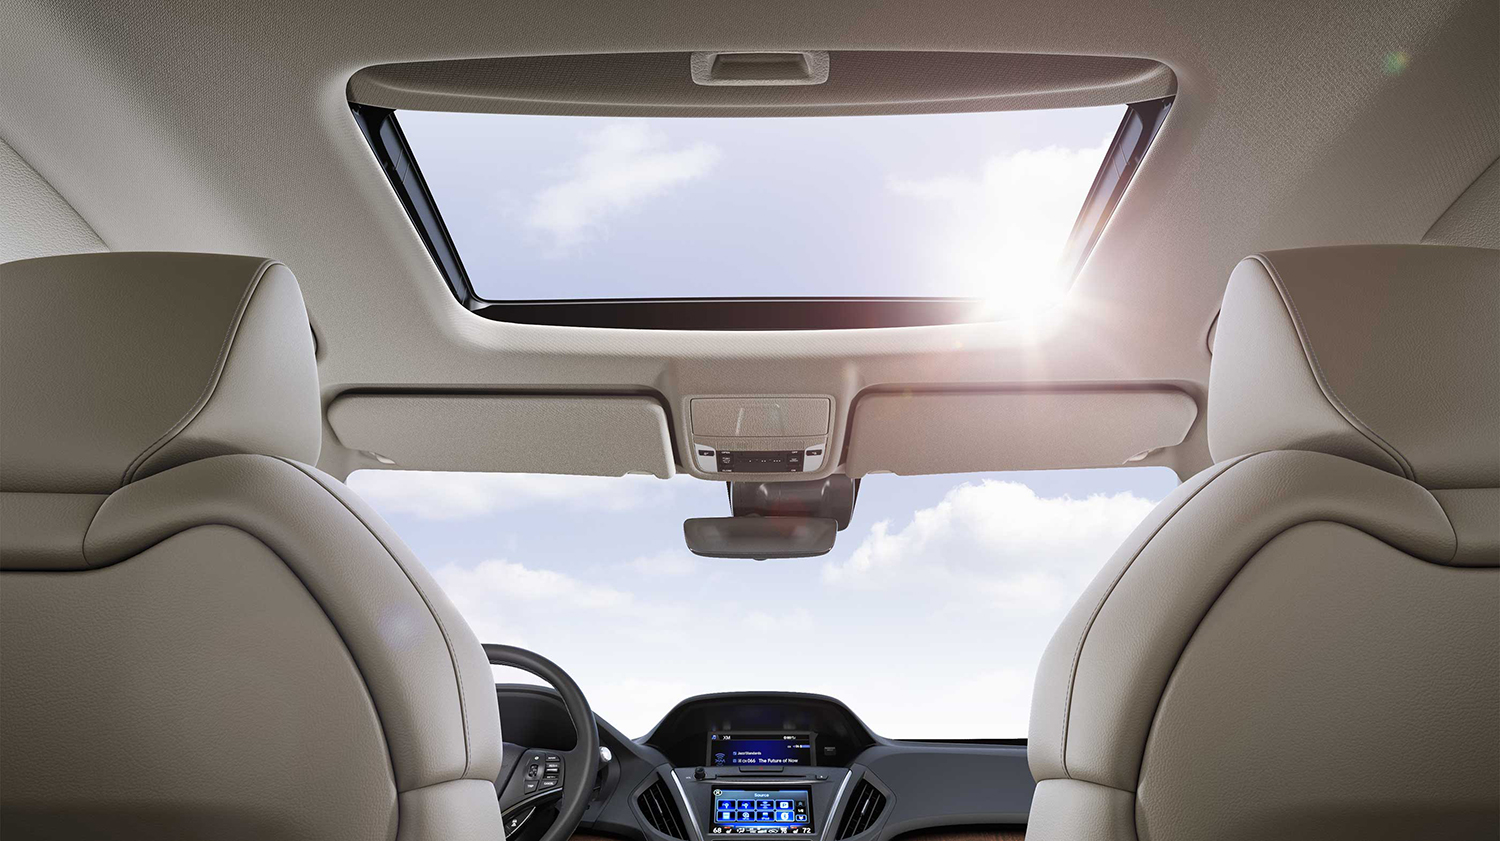 2017 Acura MDX Power Moonroof